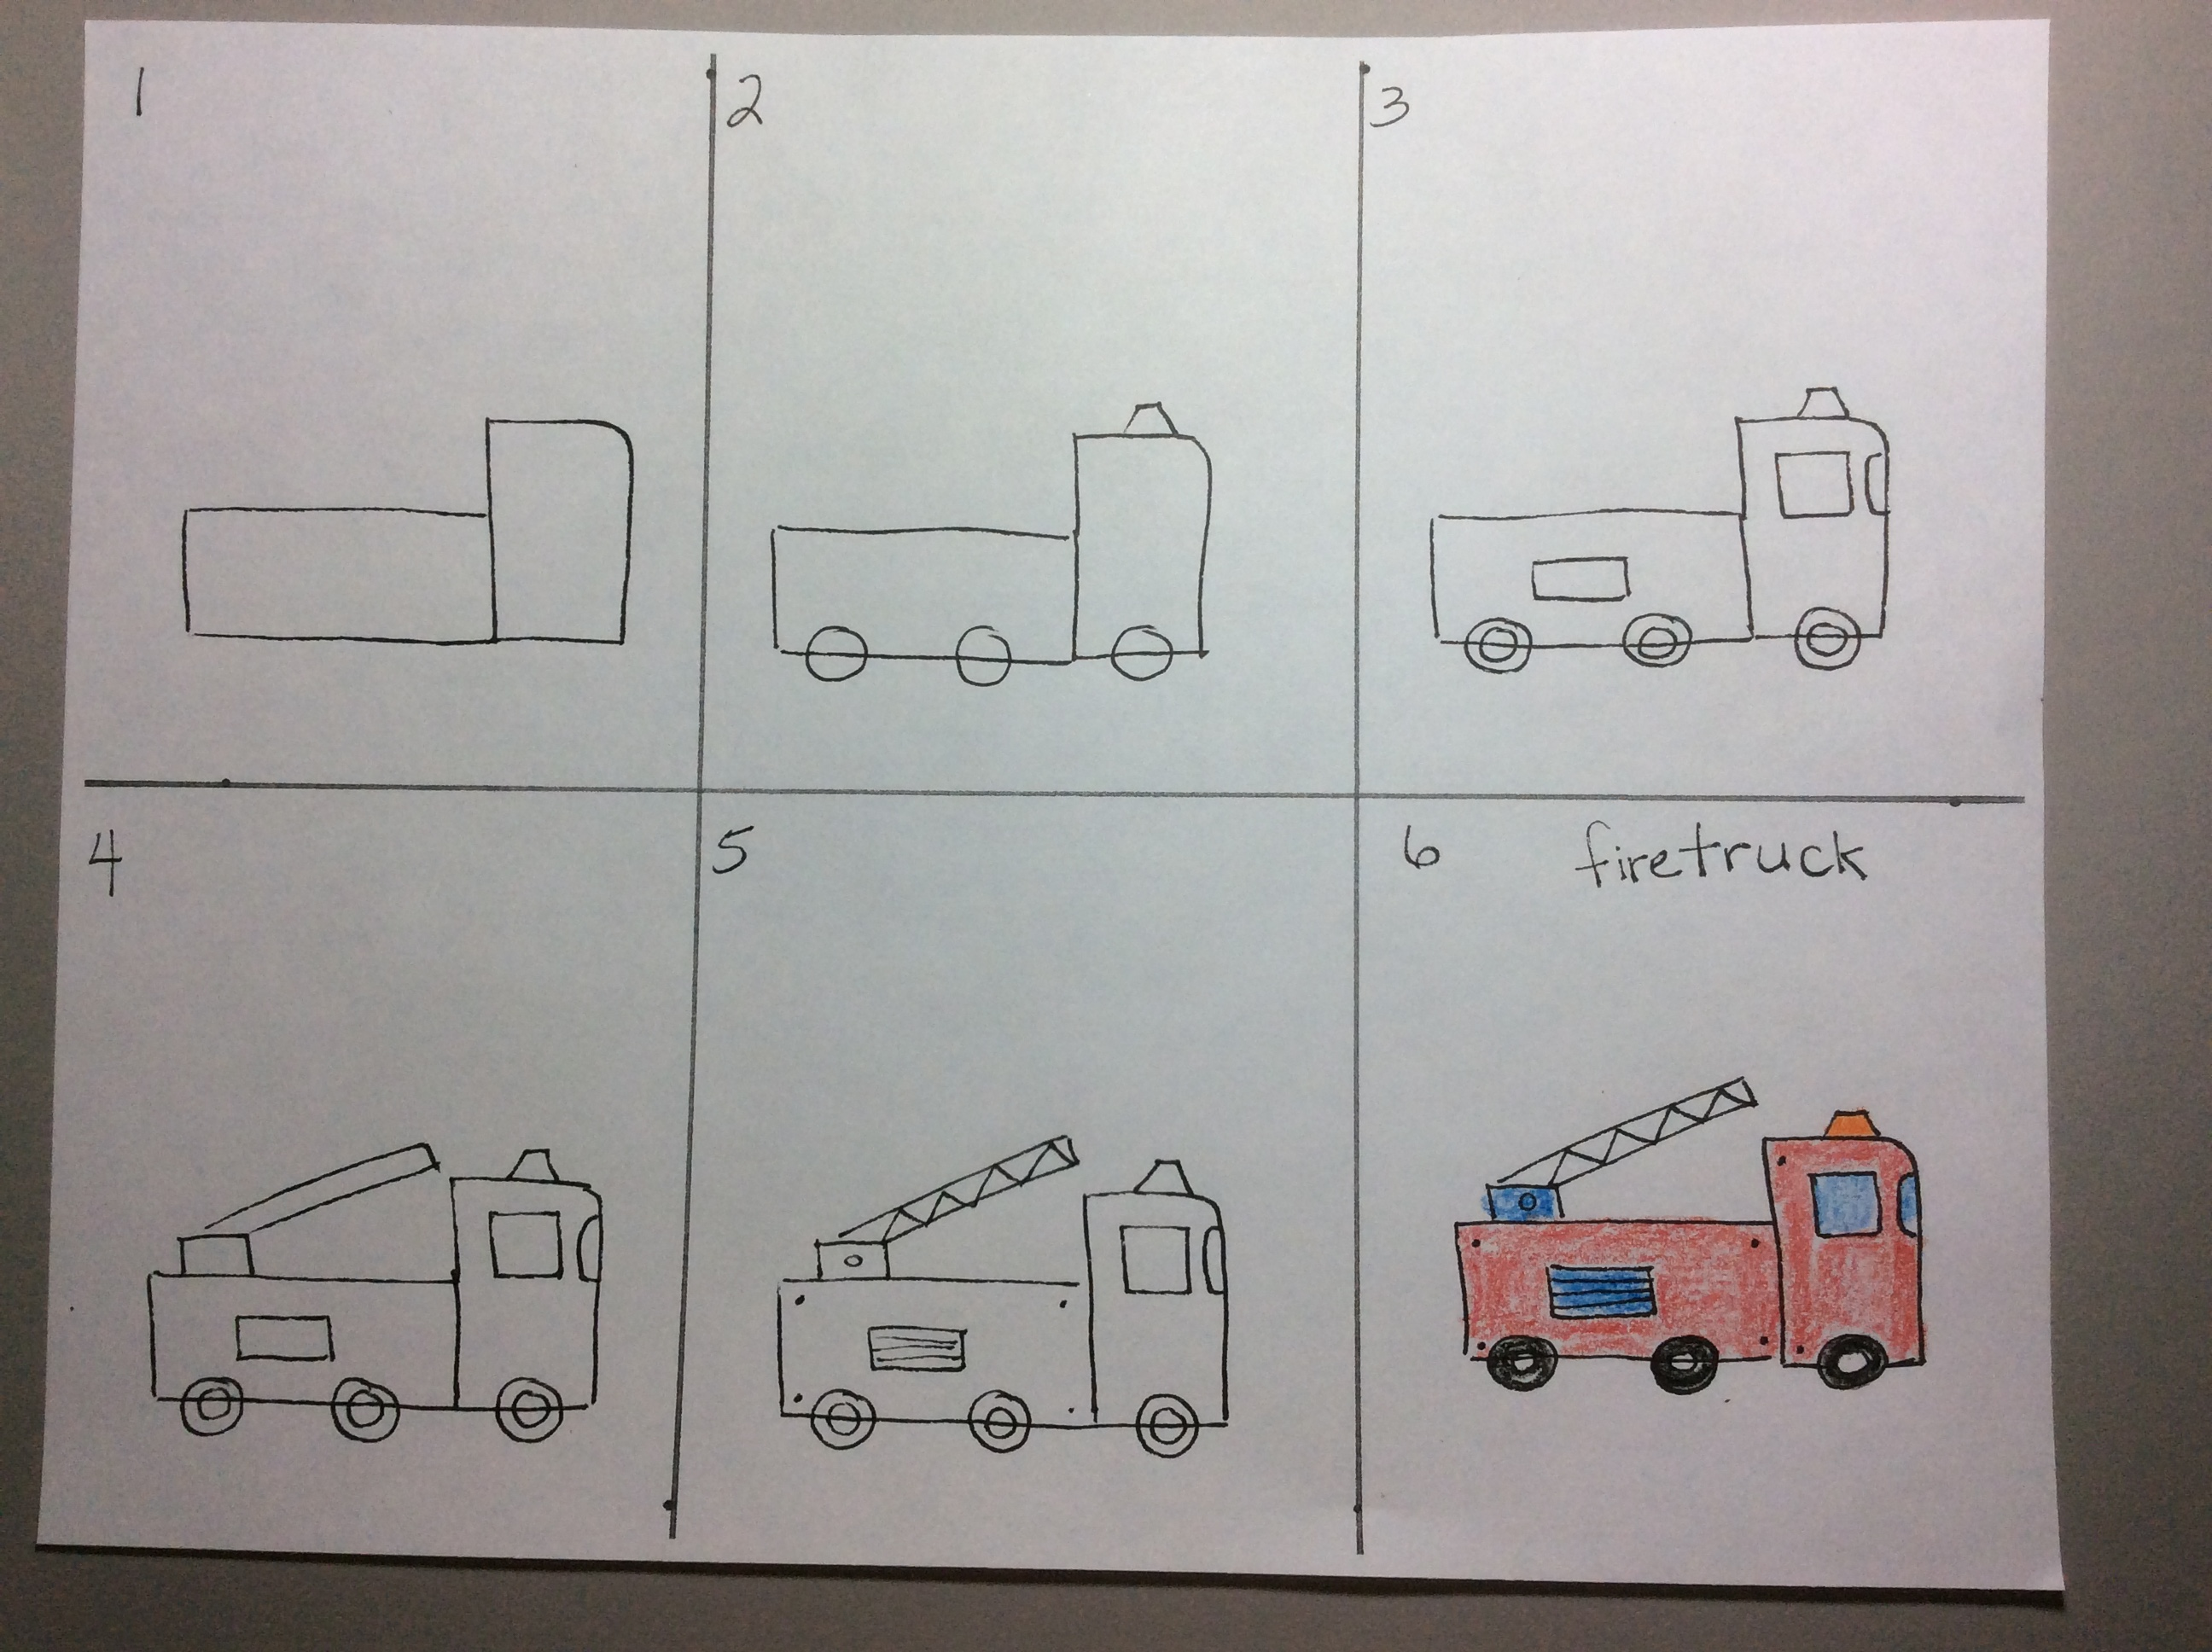 Fire Truck Drawing Easy At Free For Personal Use Engine Diagram 2592x1936